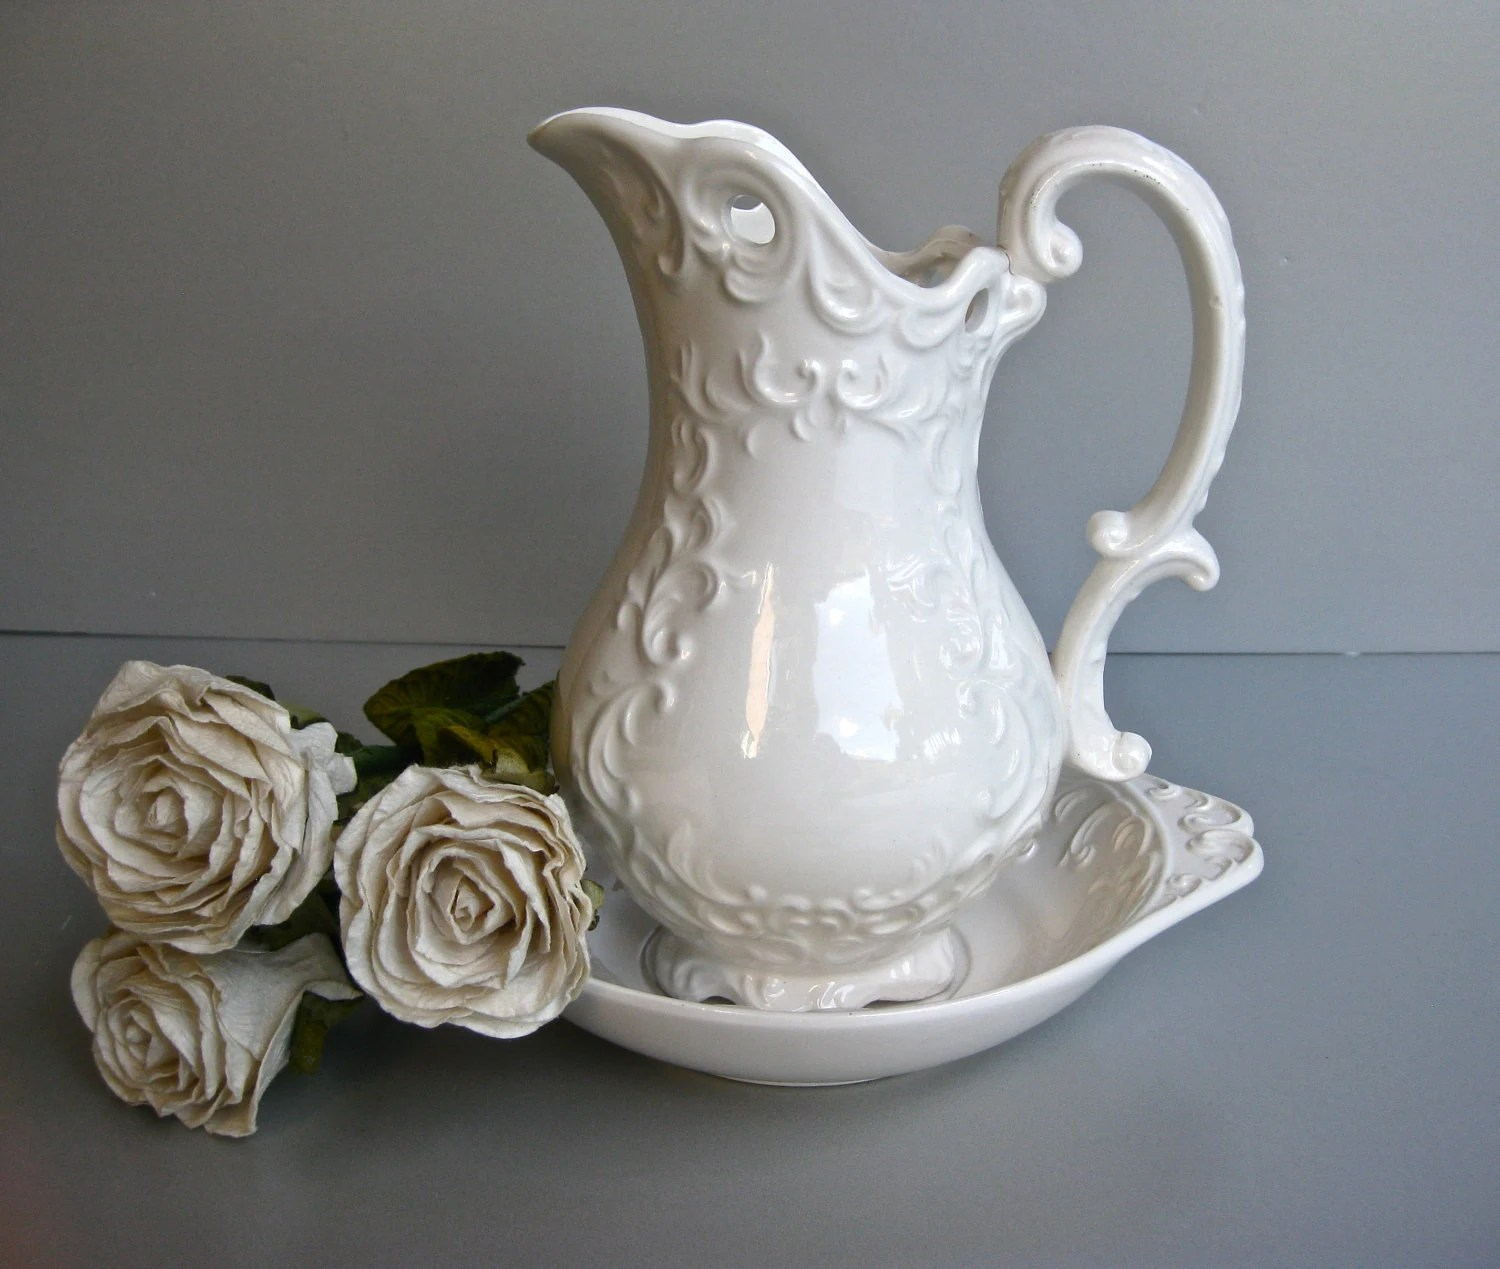 Vintage Napco White Pitcher and Bowl by Swede13 on Etsy